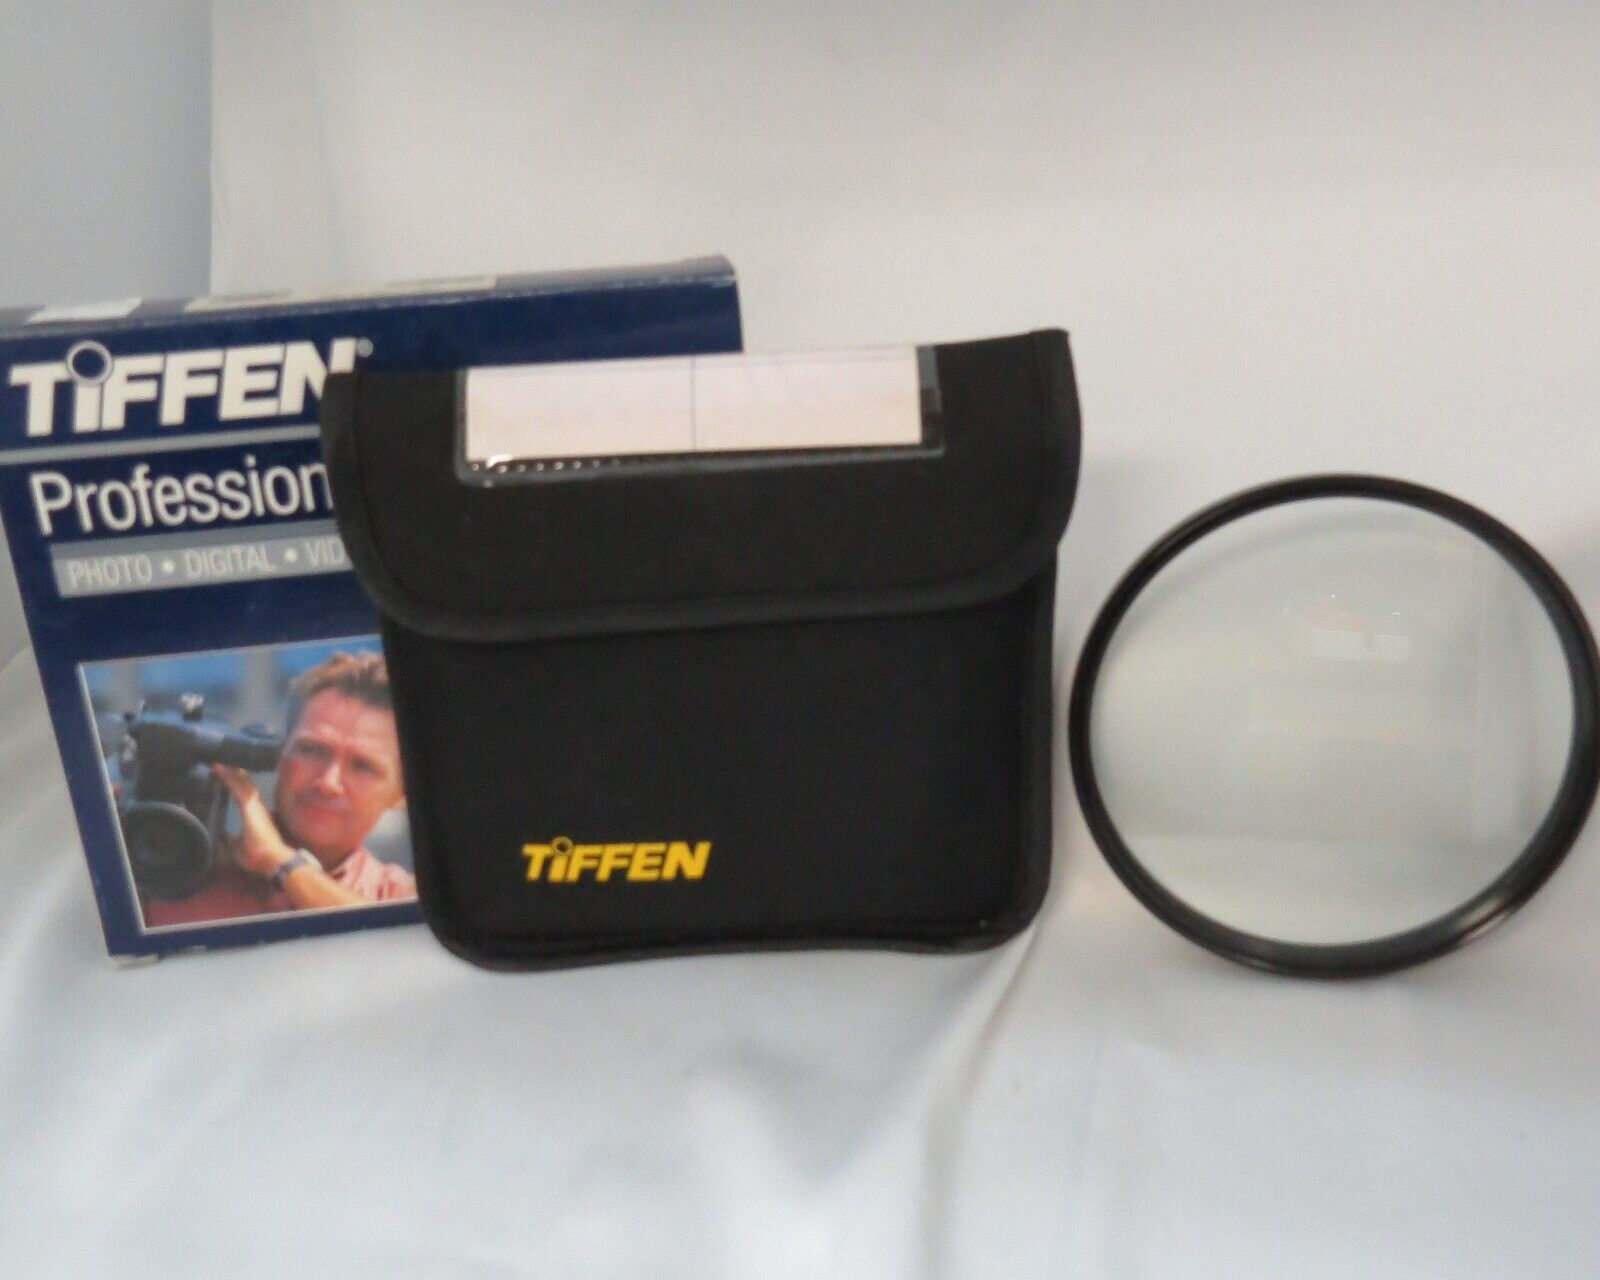 UPC 049383000573 product image for Tiffen 105c Haze Filter 105chze Uv In Box W/ Pouch | upcitemdb.com